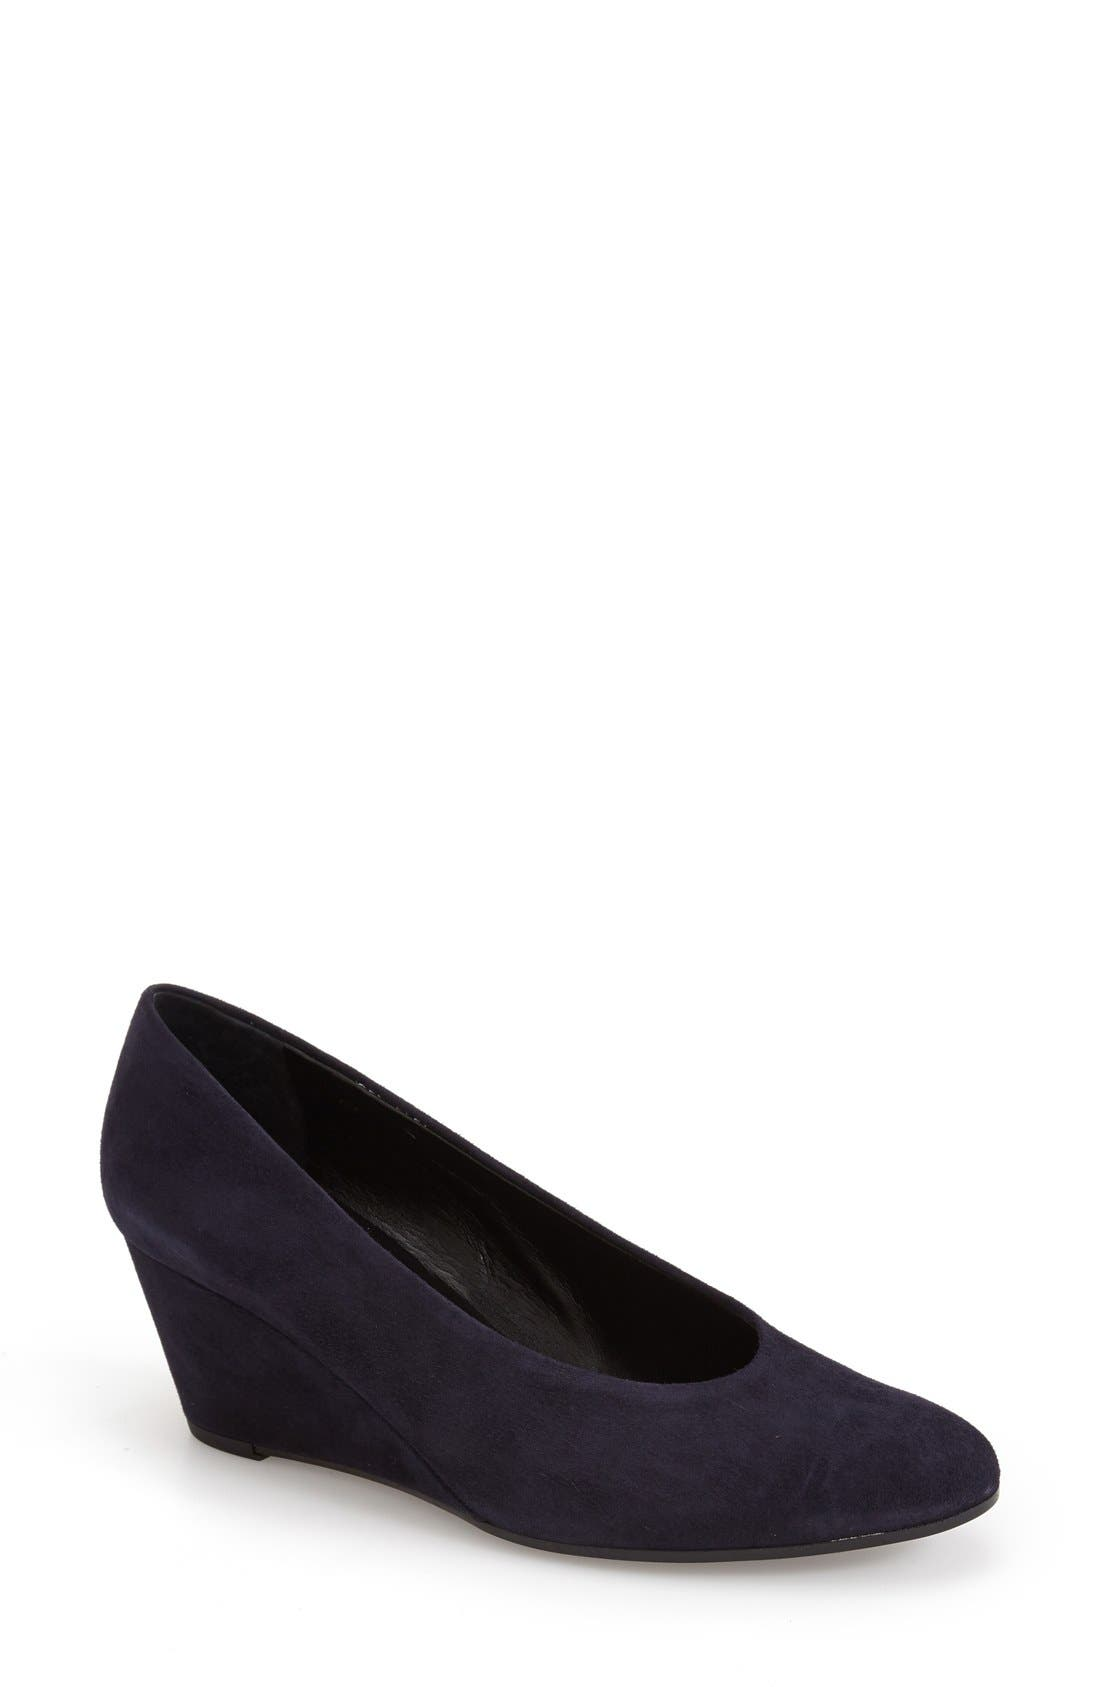 Alternate Image 1 Selected - VANELi 'Dilys' Wedge Pump (Women)